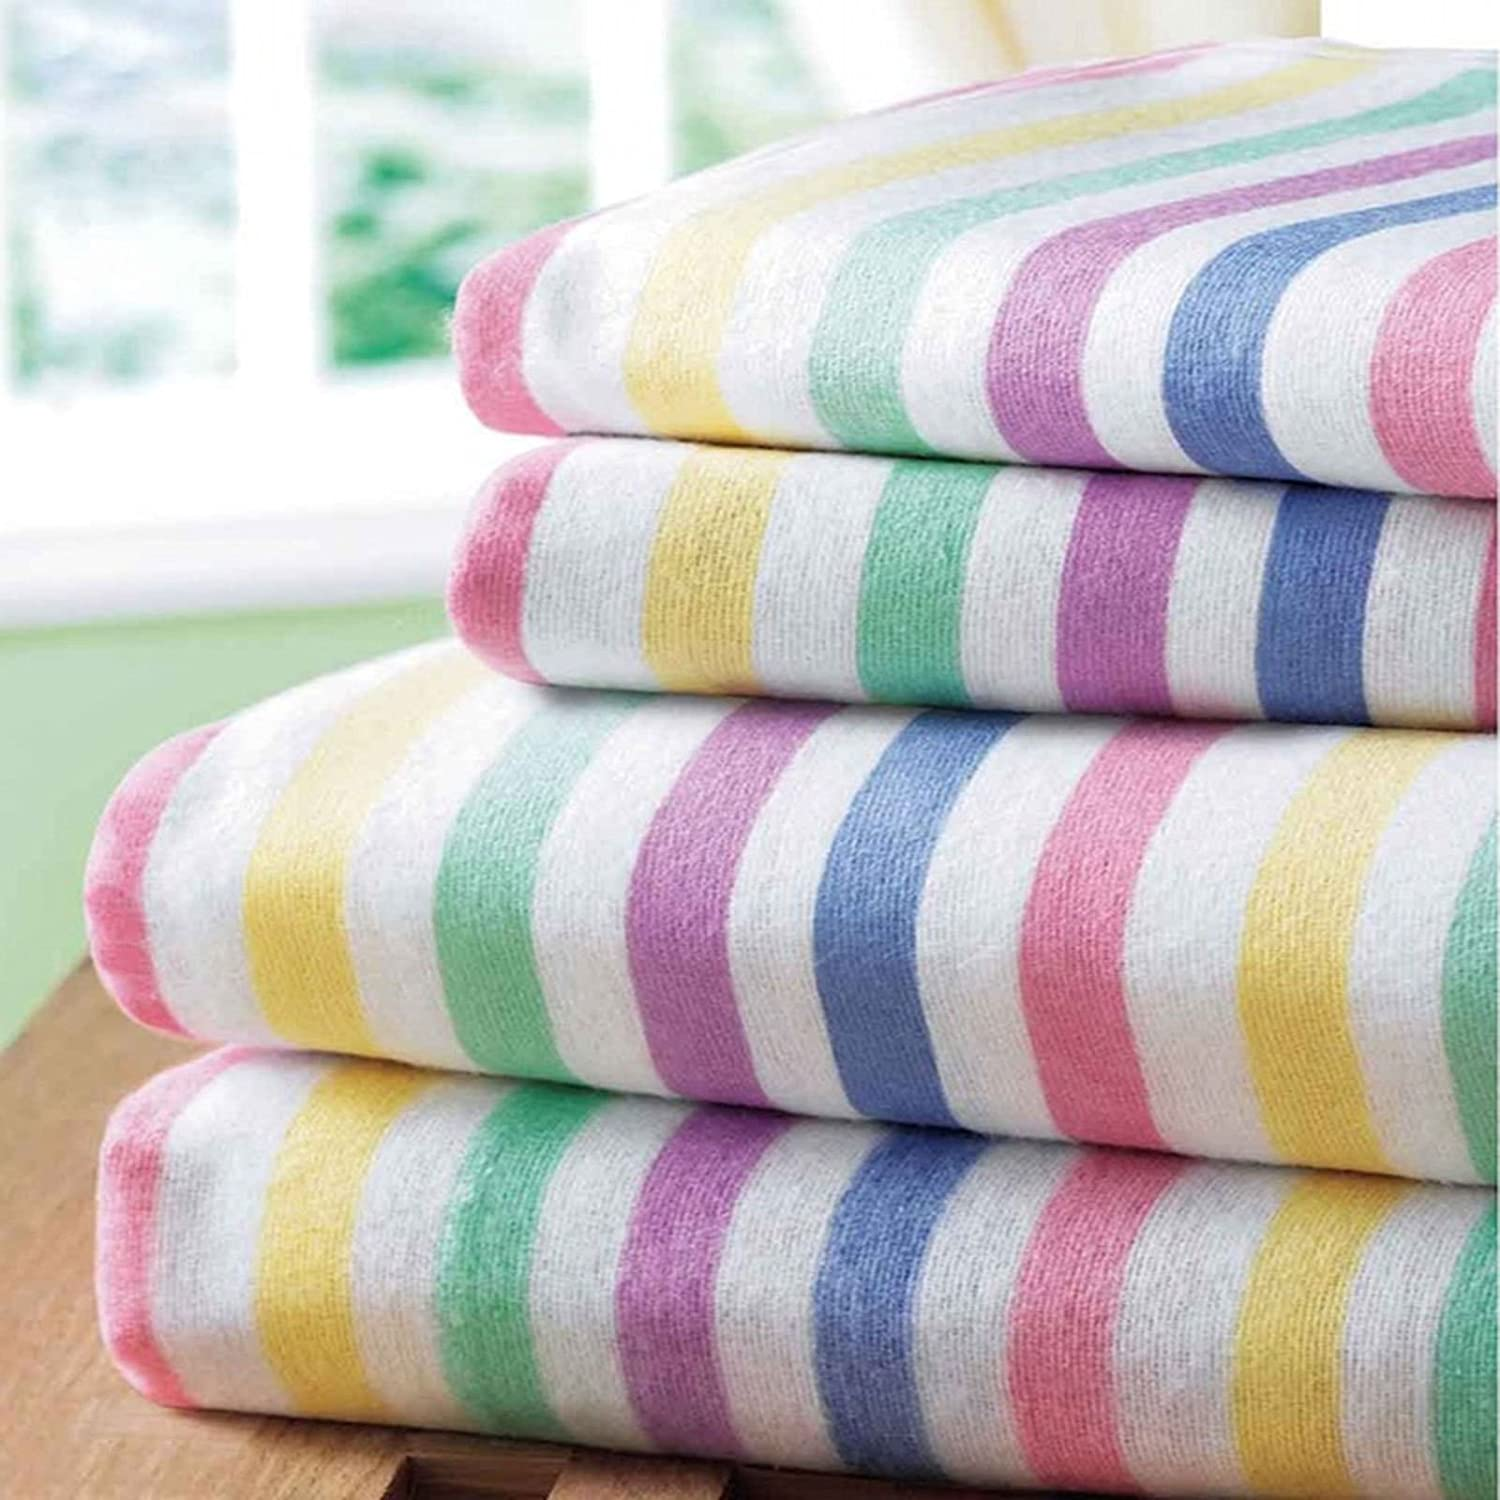 Bedding Heaven Super Soft Flannelette Sheet Set - Candy Stripe - Fairisle 100% Brushed Cotton Fitted & Flat Sheet & Pillowcases (double, candy/stripe) Rapport